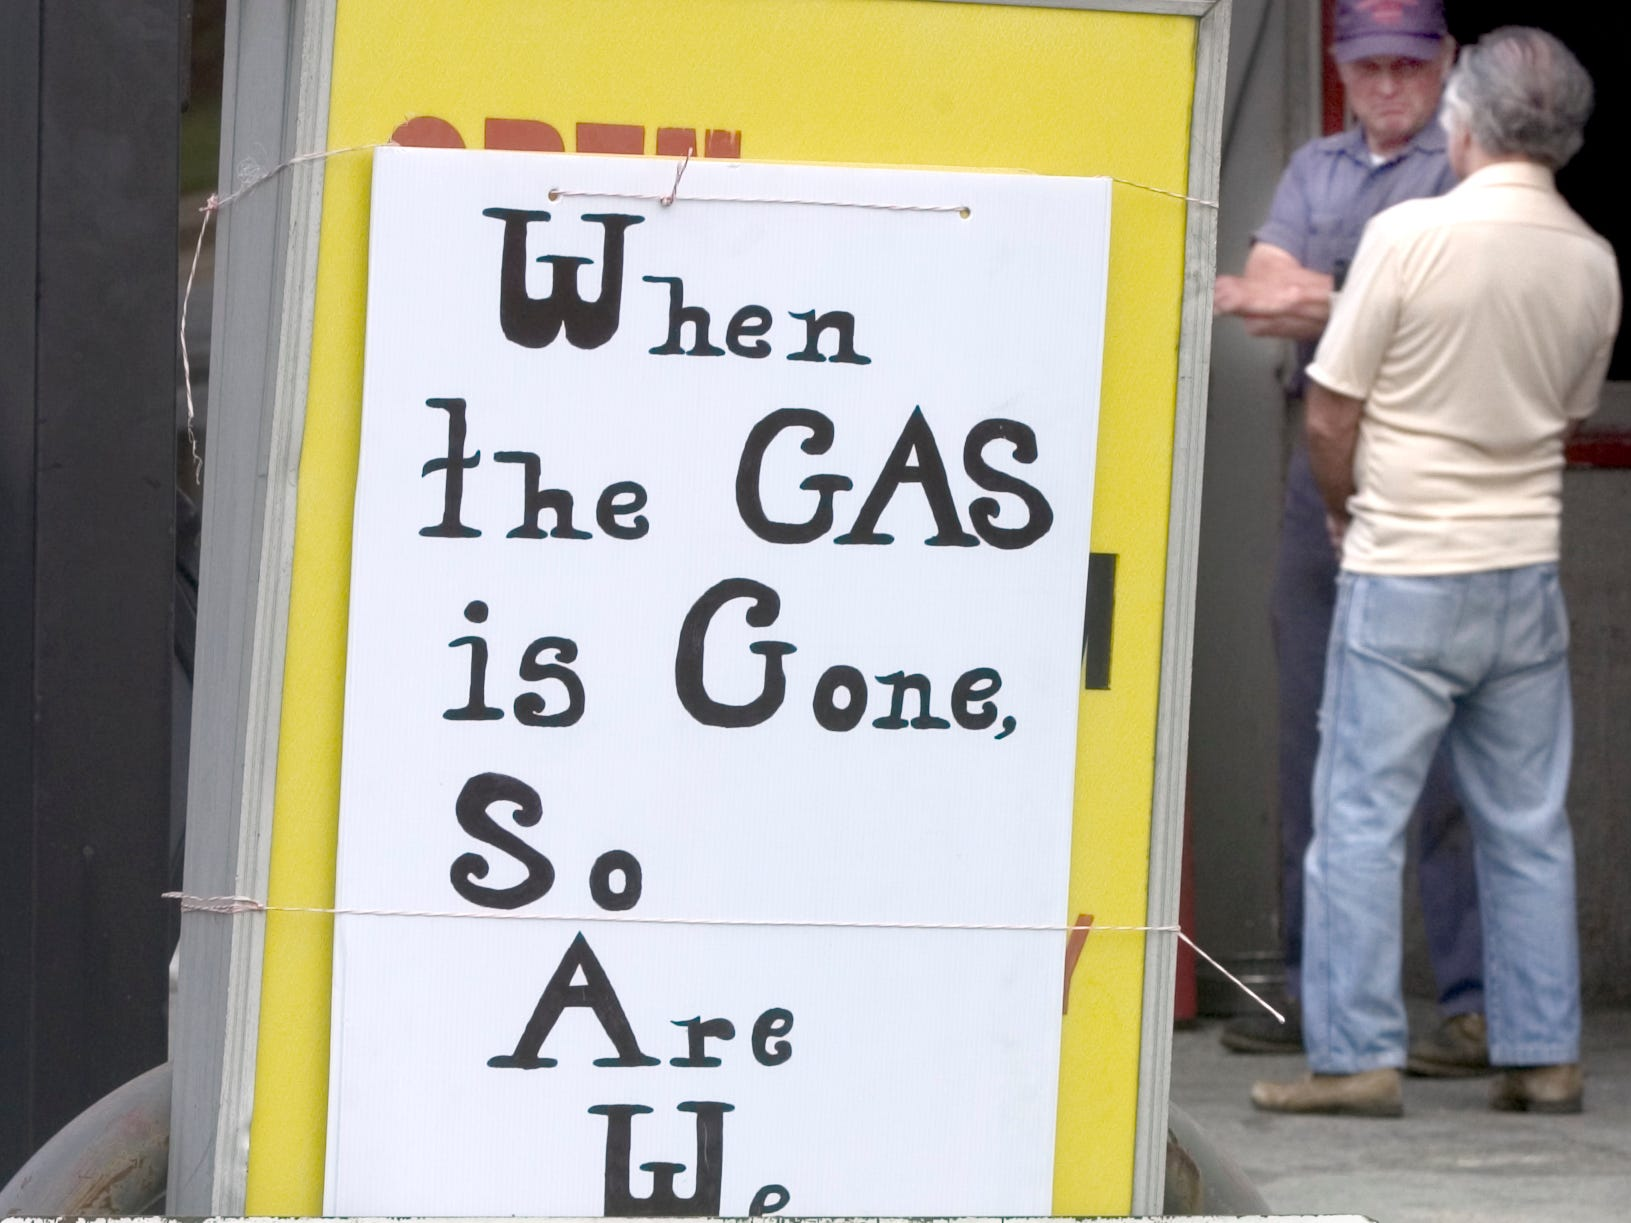 Lynn Haines talks with Ed Weigle, a longtime Lincoln Highway Garage customer. People still milled around the pumps even with the final closing sign in view on May 11, 2004.